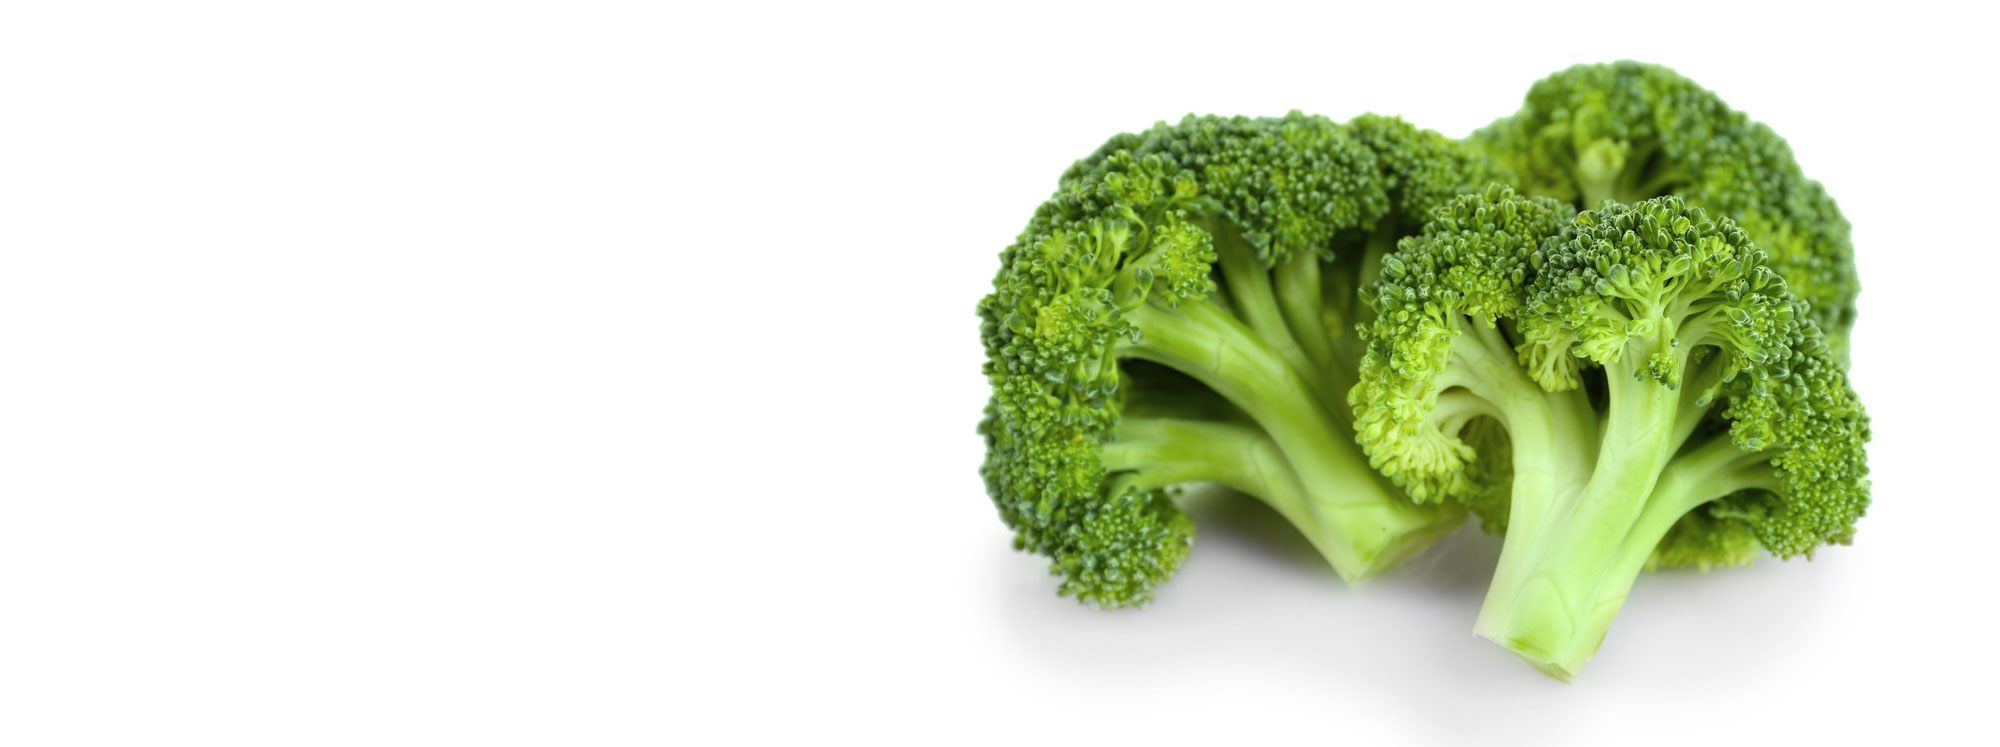 we need a clinical trial of broccoli seriously the science of